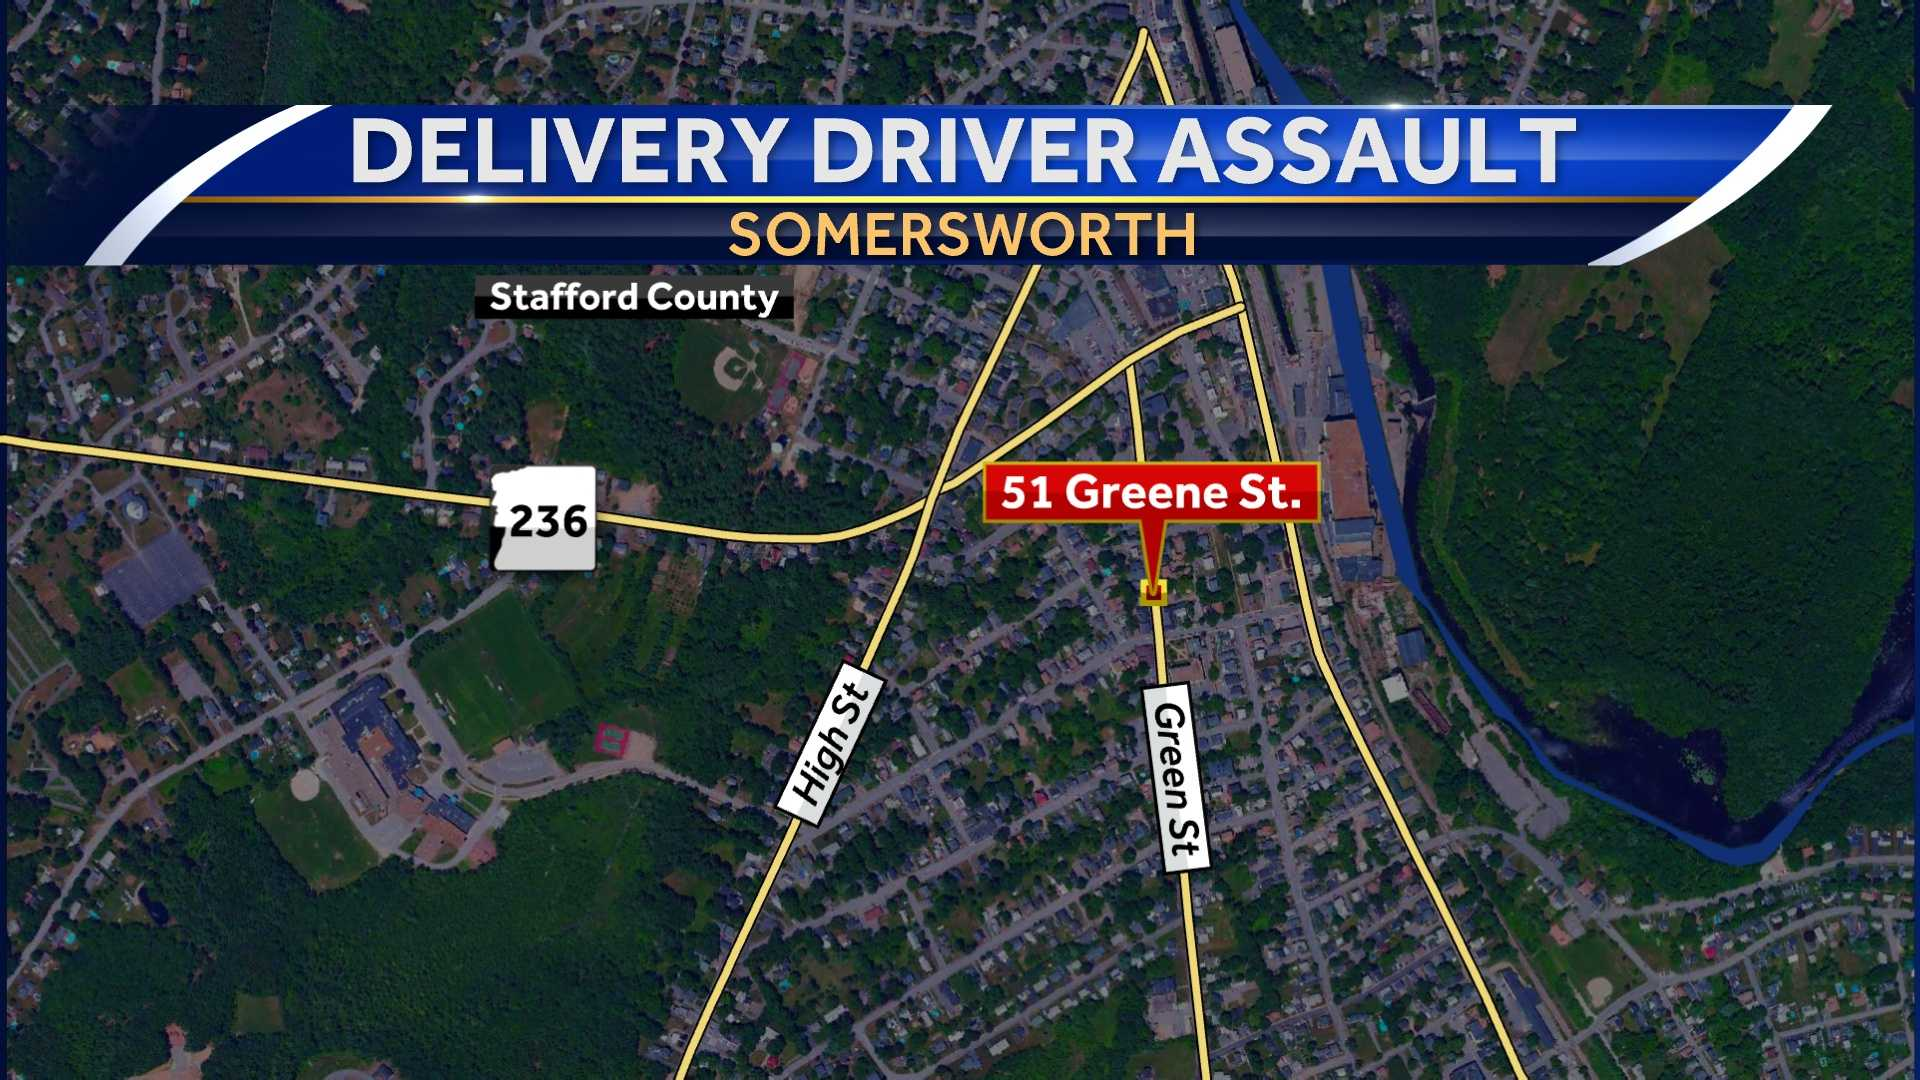 _map-Somersworth deliver driver_0120.jpg